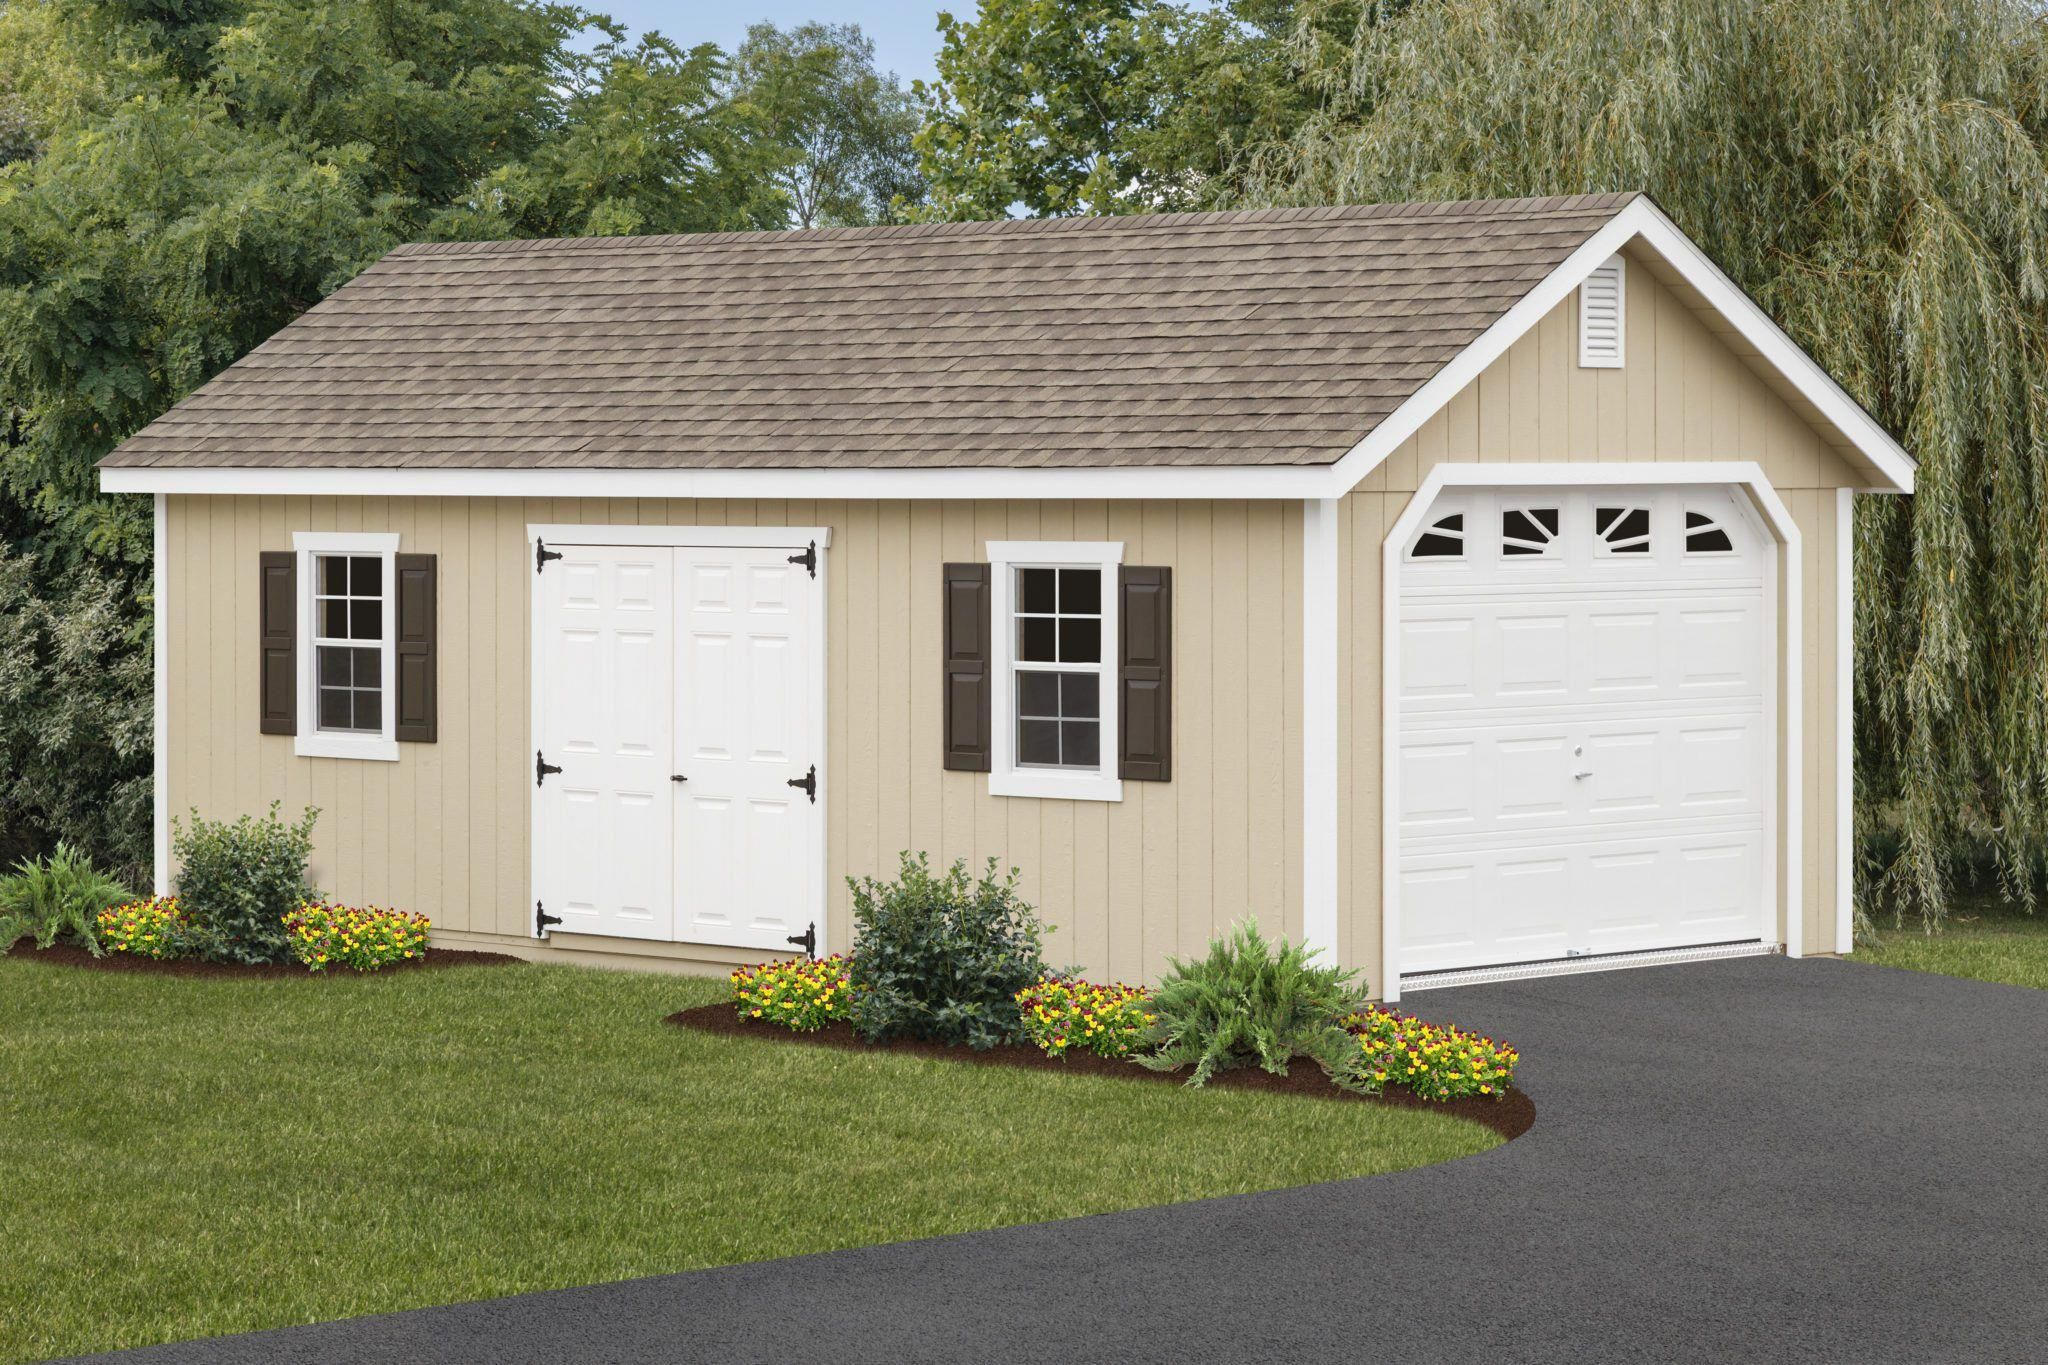 This 12 26 Fairmont Garage Is The Perfect Addition To Any Property Looking To Add More Storage Space Park Your Car Sto Garage Shed Shed Design Backyard Sheds